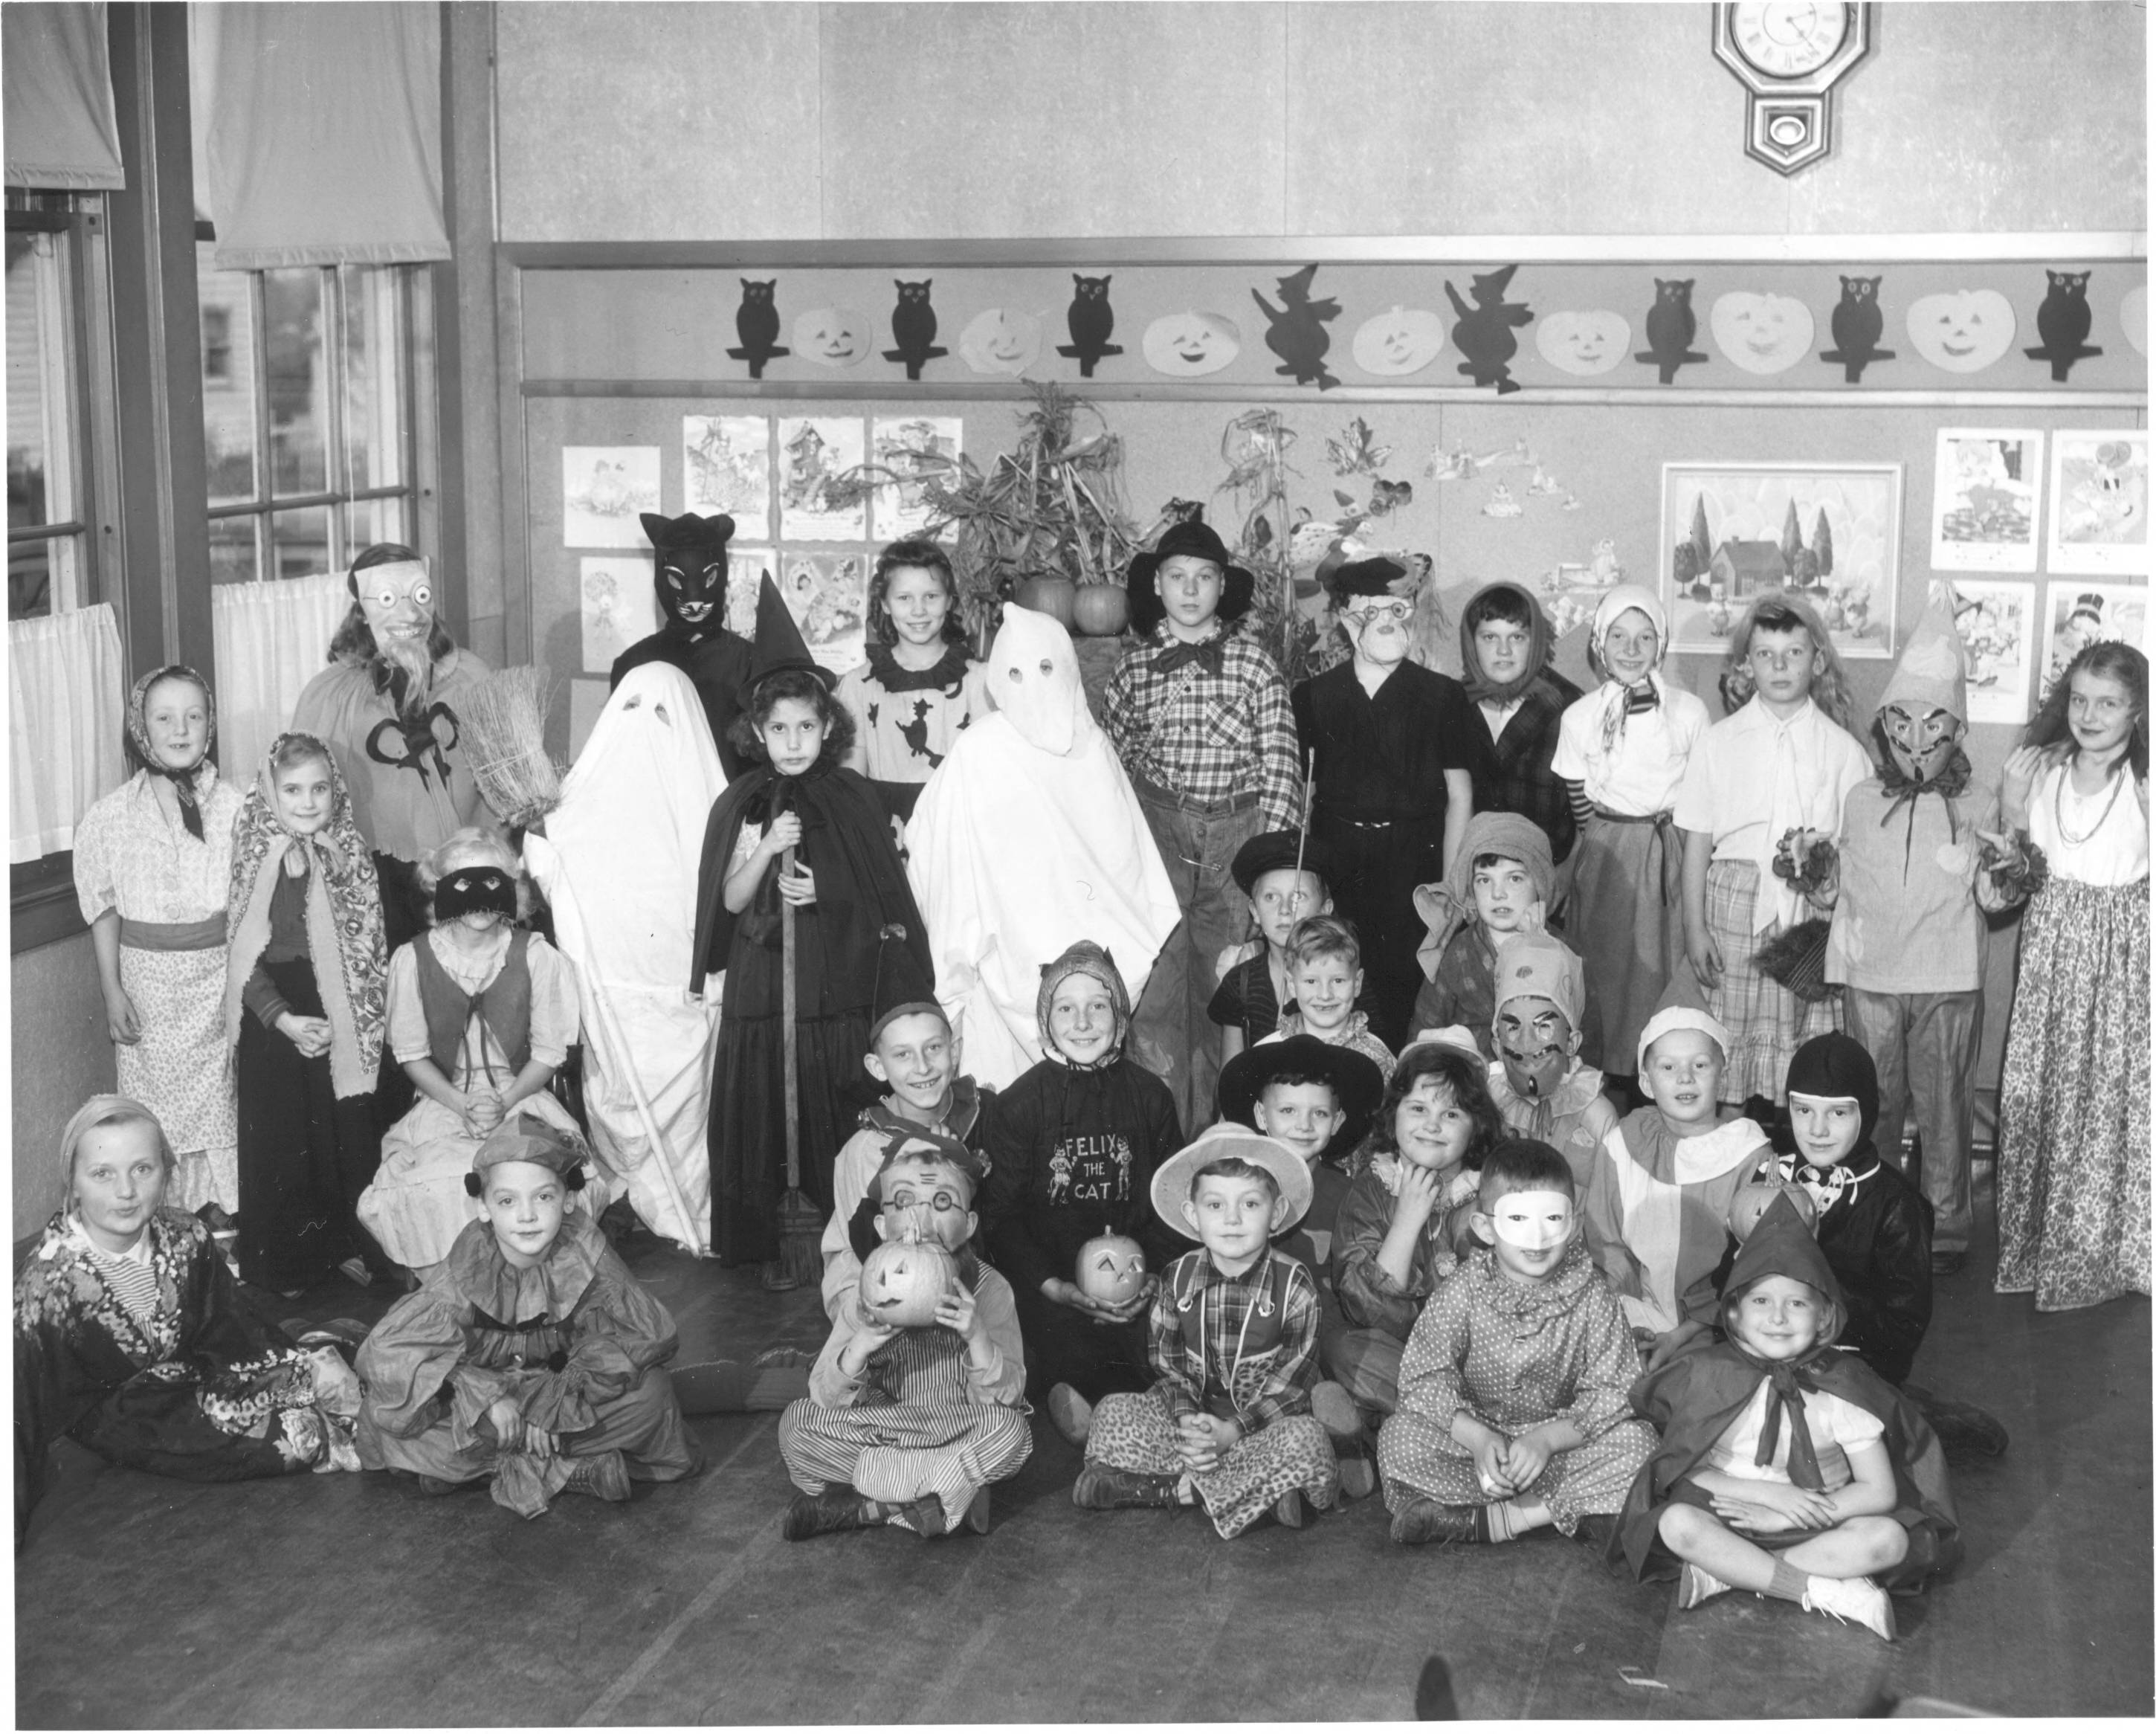 "Children at Manitou School are celebrating their tenth annual Halloween festivities with costumes, masks, parades and special tricks and treats. View of children dressed as, fortune tellers, cowboys, indians, witches, hillbillies, ghosts, scarecrows, clowns and ""Little Red Riding Hood"". Jack-o-lanterns, witches and owls decorate the walls of the classroom, names appear in newspaper (T. Times, 10/31/47, p. 16)."